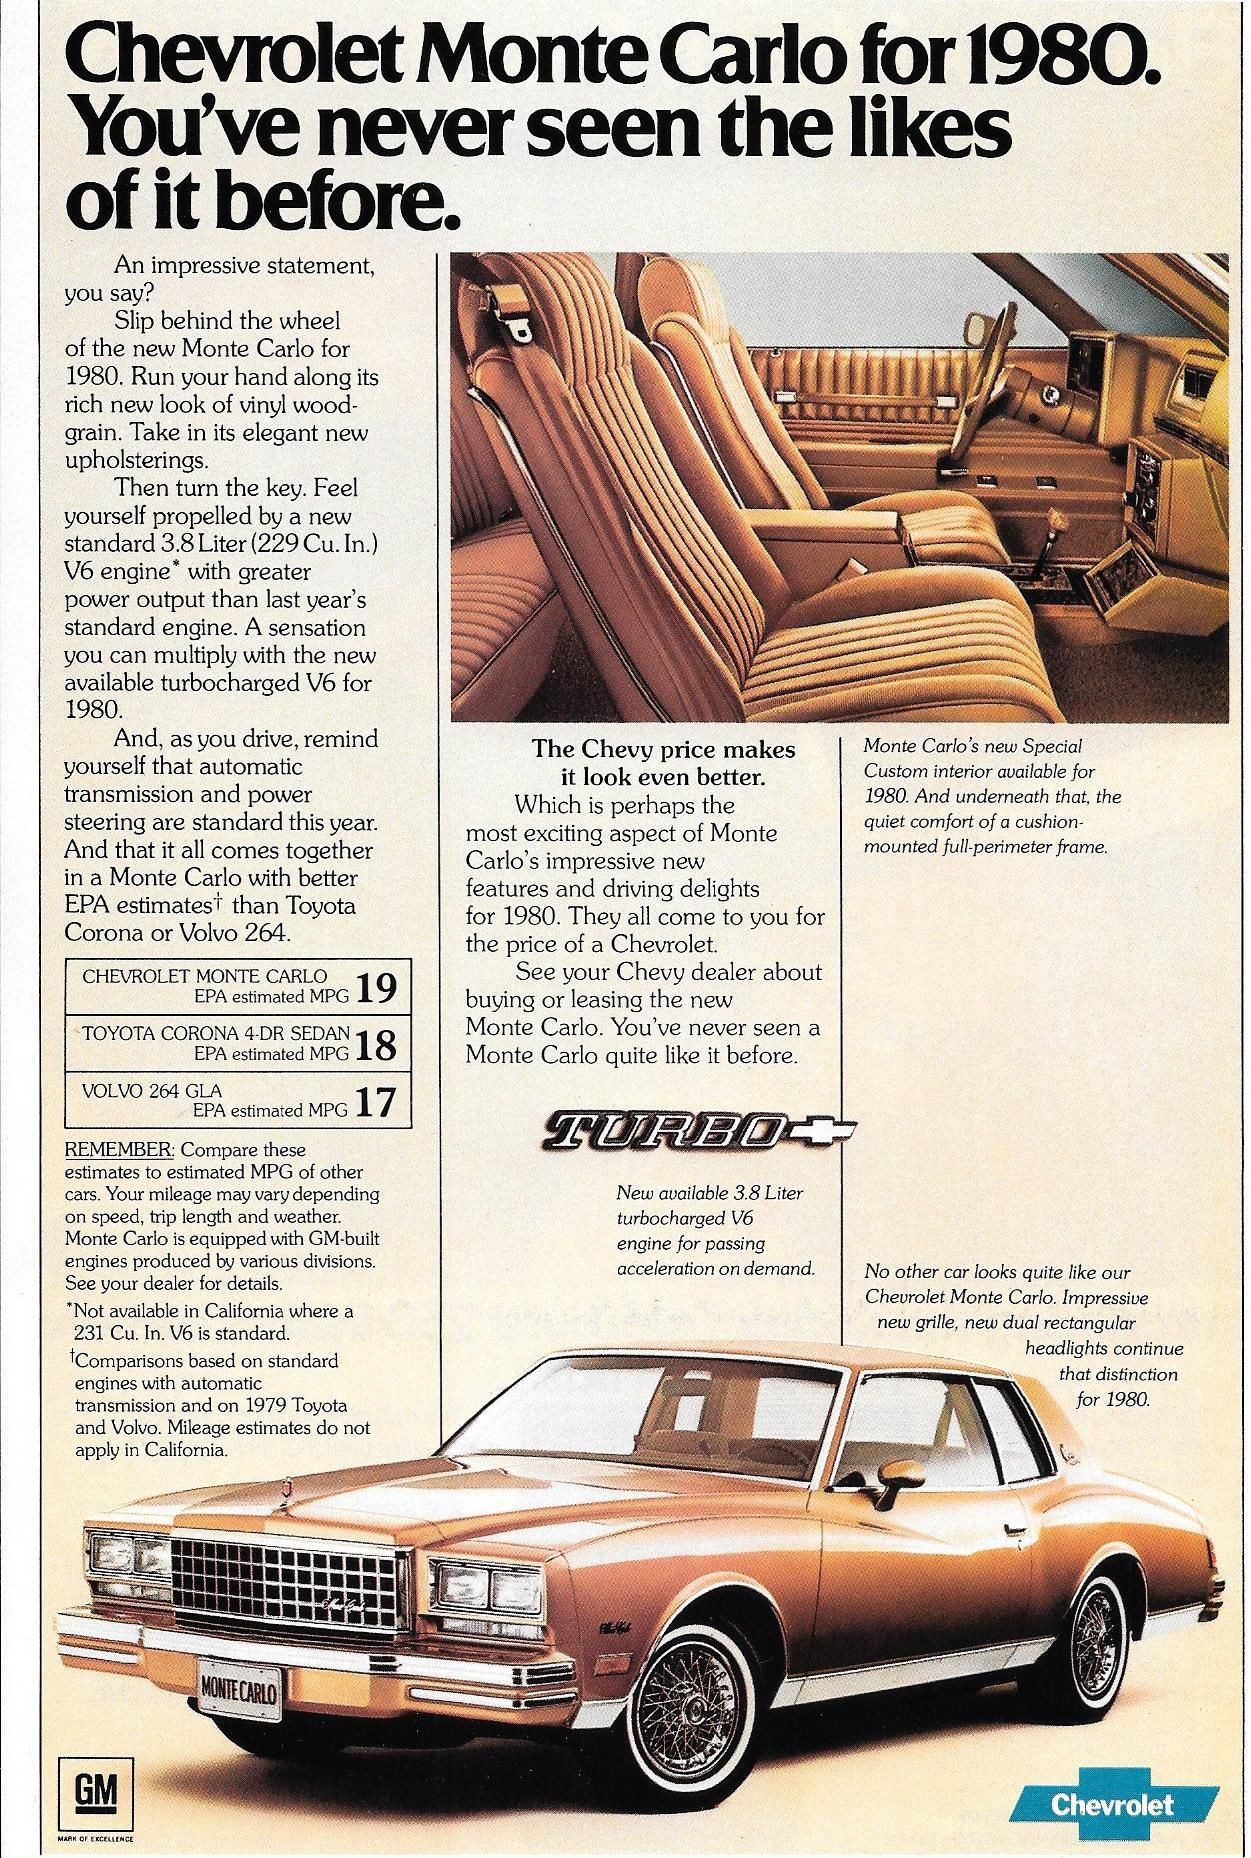 Pin By Jon Redmond On Nifty Old Cars Chevrolet Monte Carlo Car